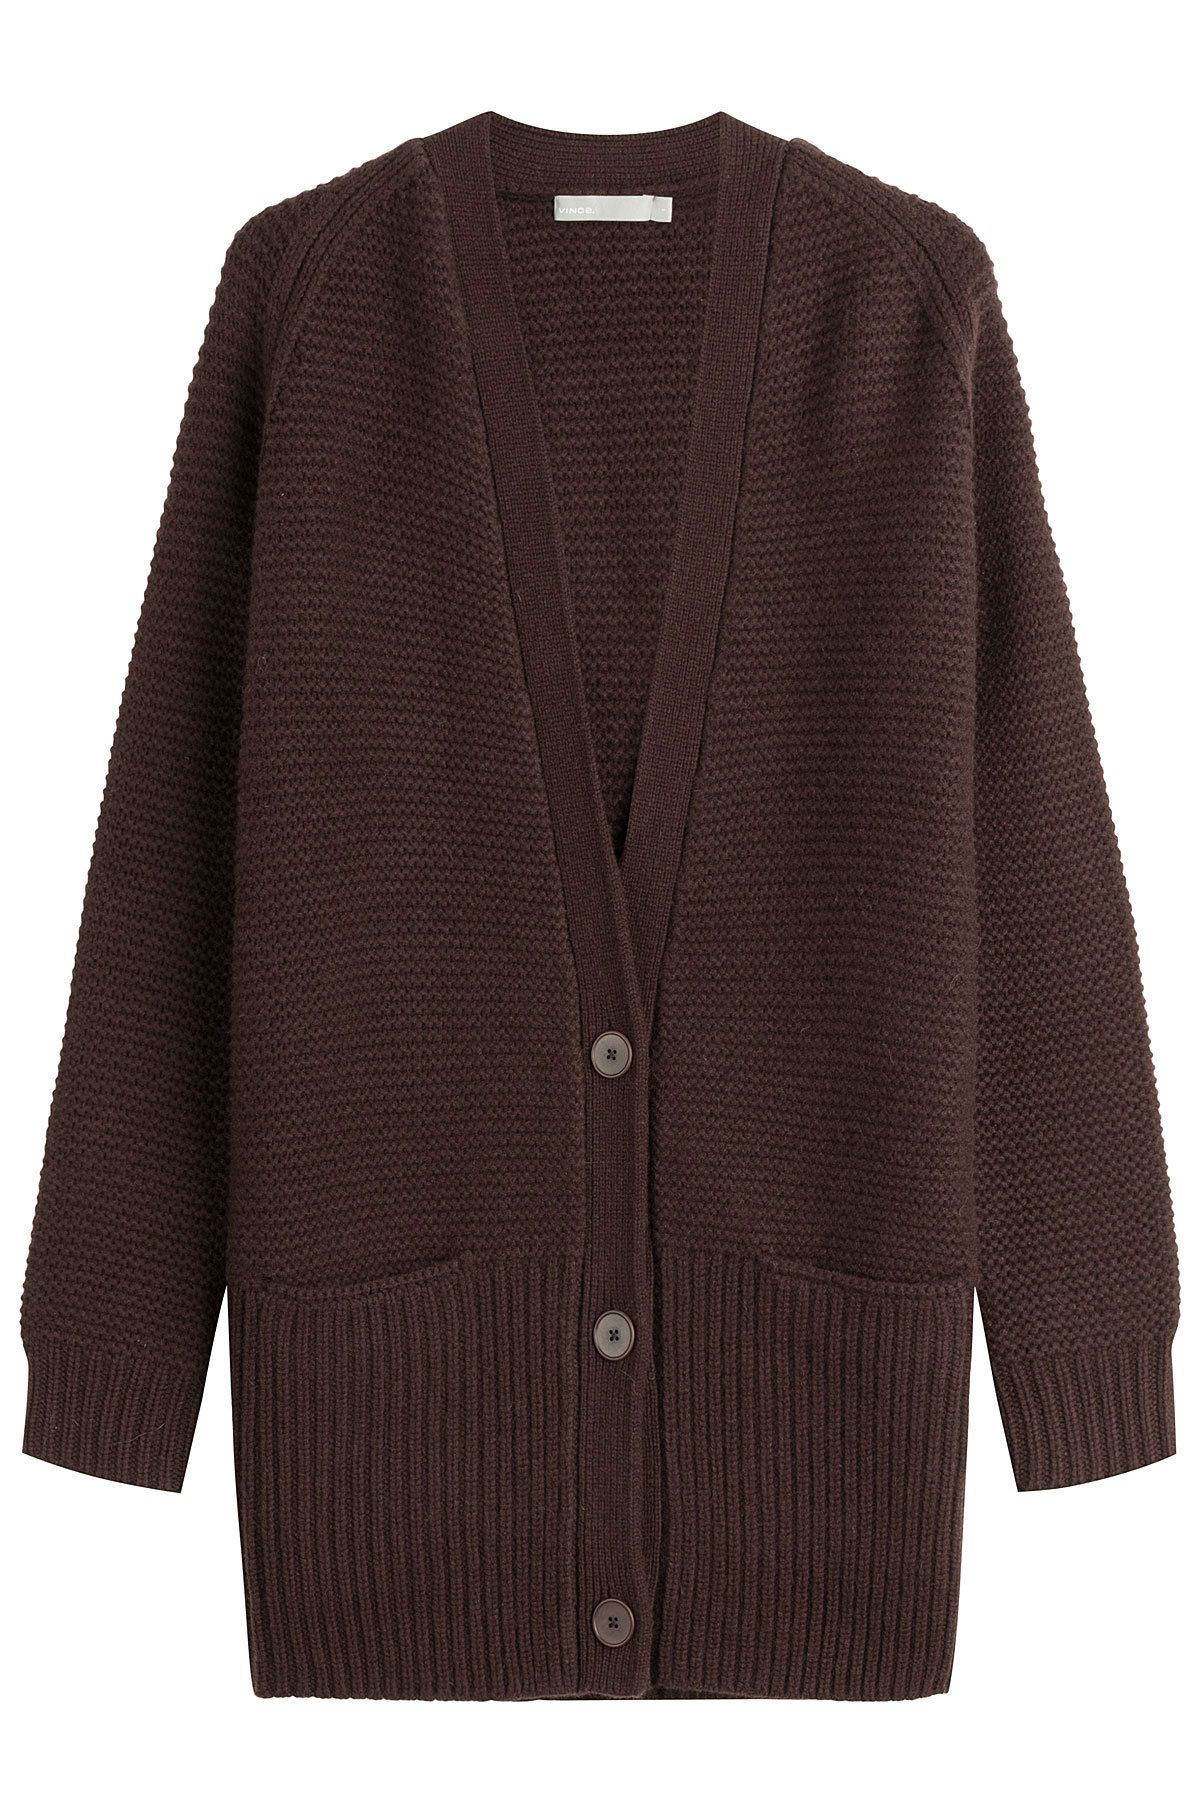 Wool and Cashmere Cardigan - Vince | WOMEN | US STYLEBOP.COM ...